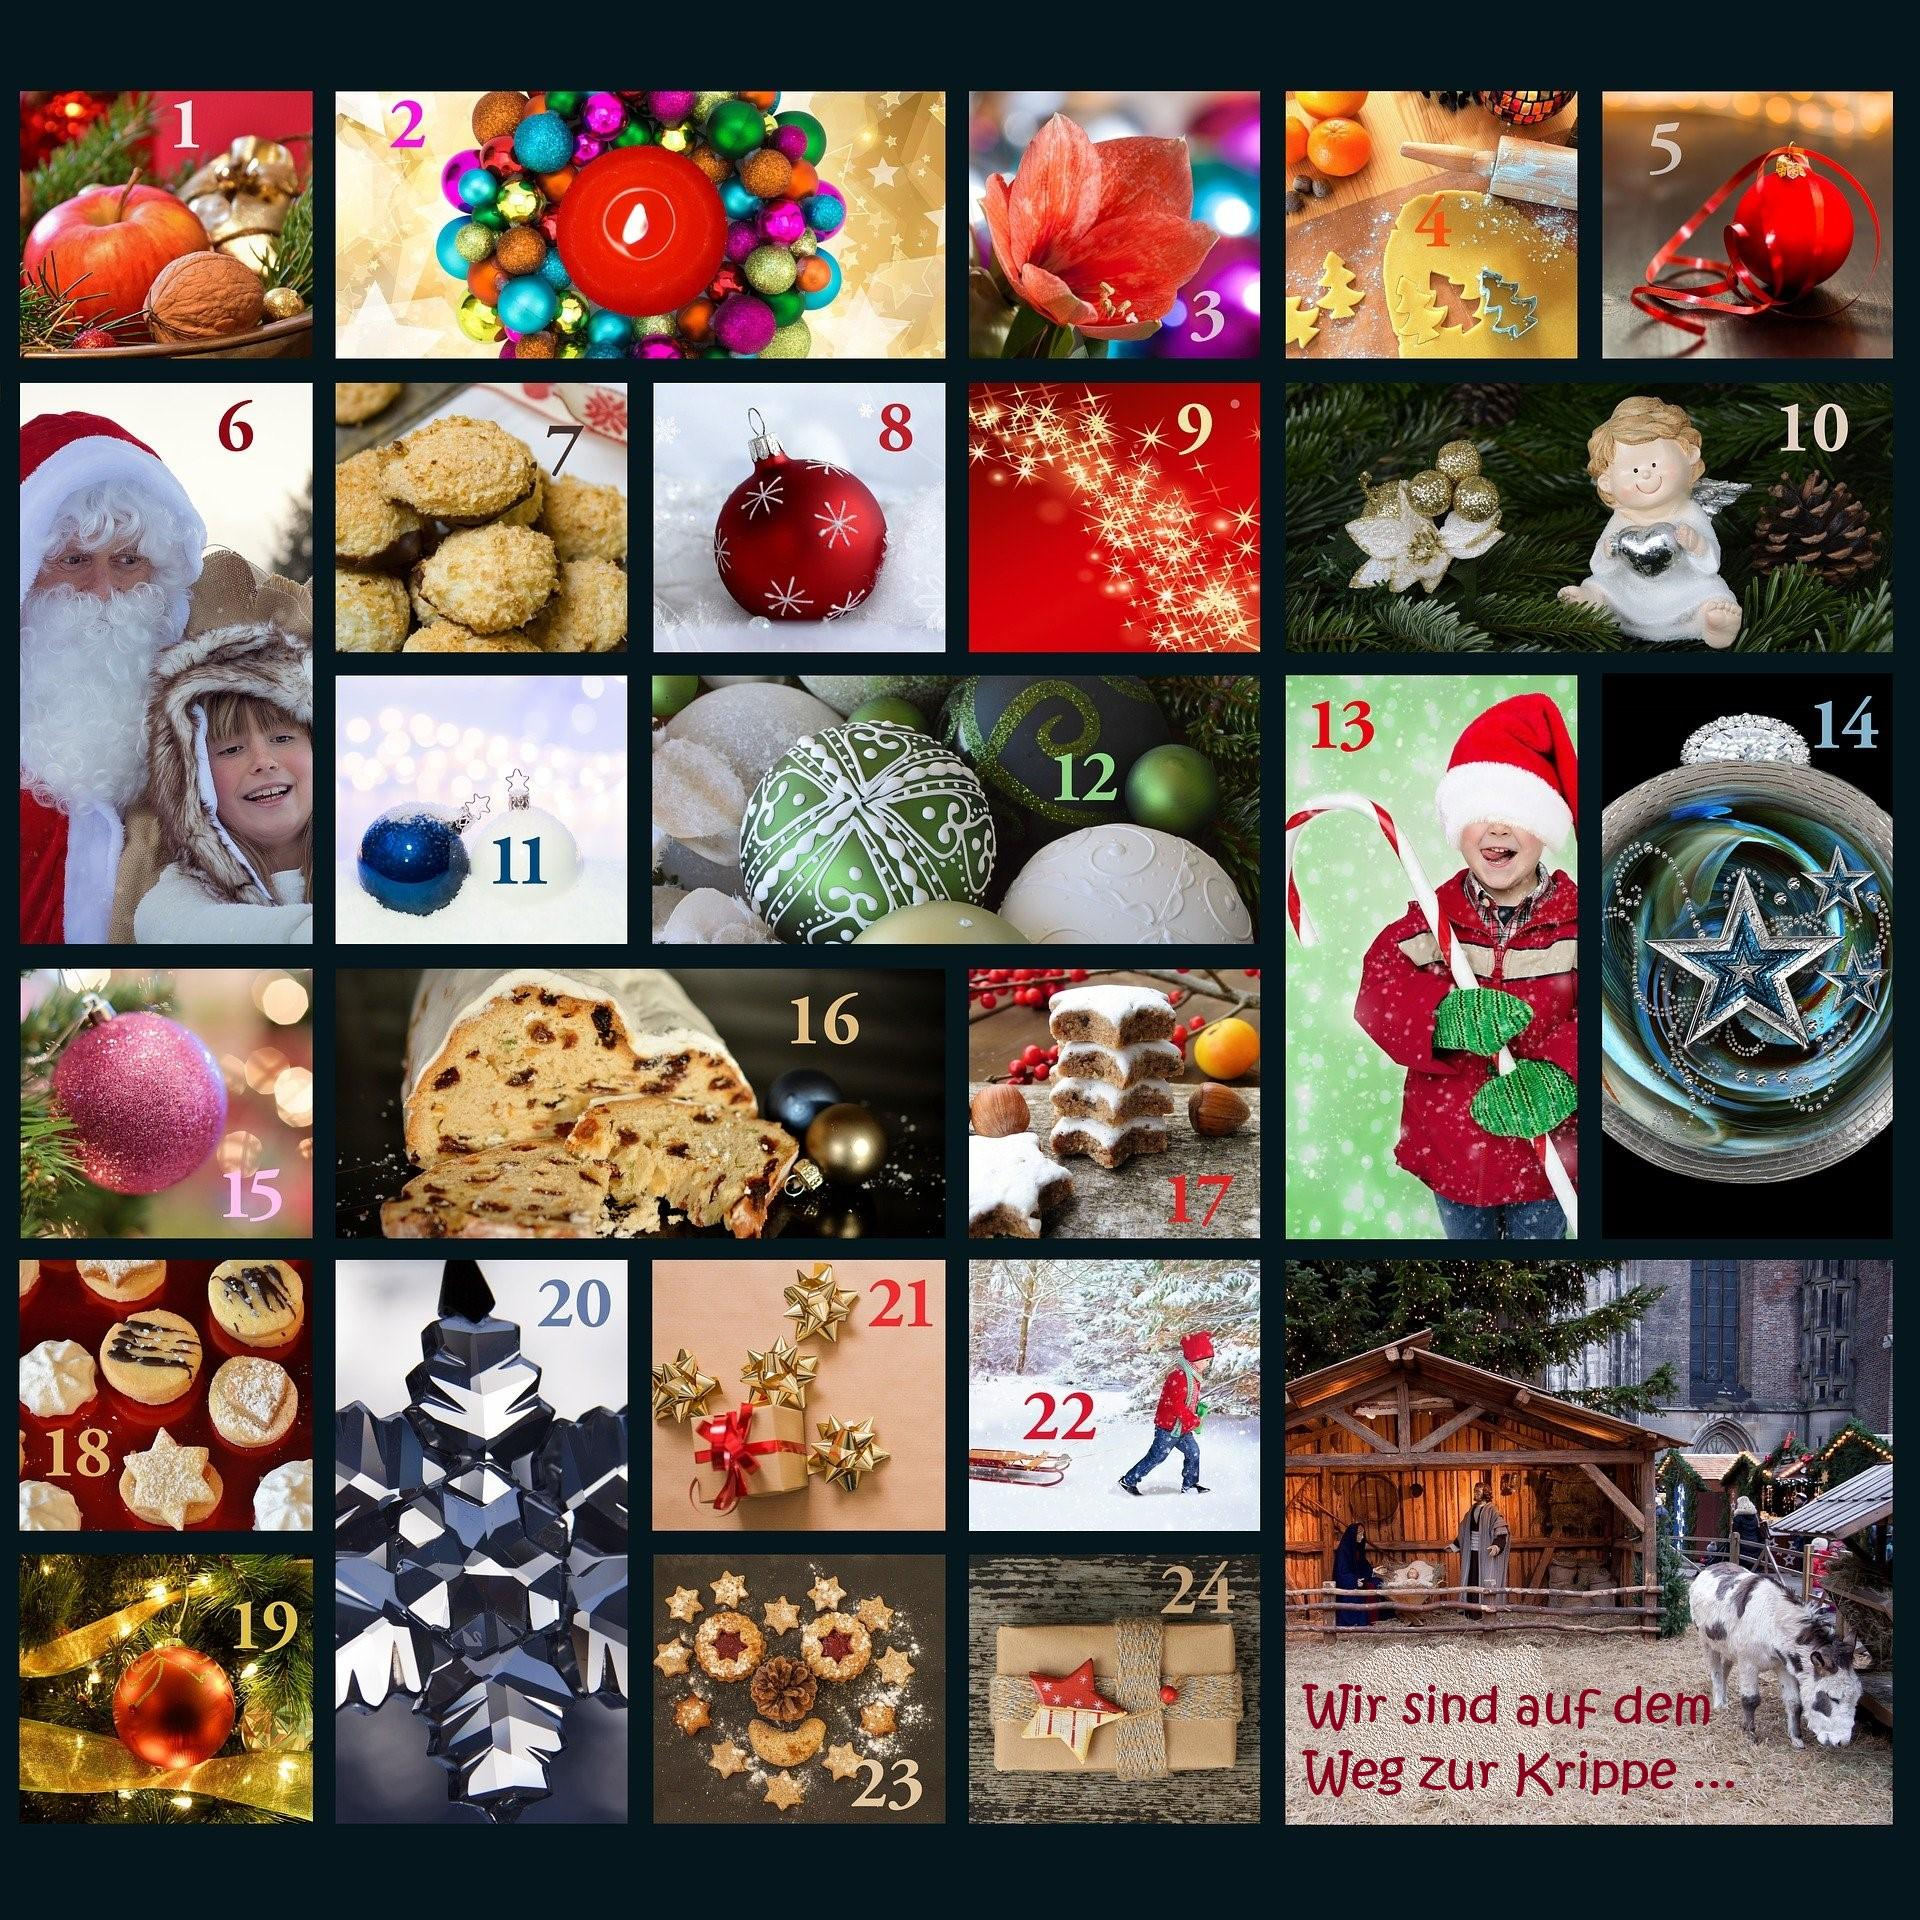 Adventskalender (c) Bild von <a href=https://pixabay.com/de/users/stux-12364/?utm_source=link-attribution&utm_medium=referral&utm_campaign=image&utm_content=1875562>Thanks for your Like • donations welcome</a> auf <a href=https://pixabay.com/de/?utm_source=link-attribution&utm_medium=referral&utm_campaign=image&utm_content=1875562>Pixabay</a>